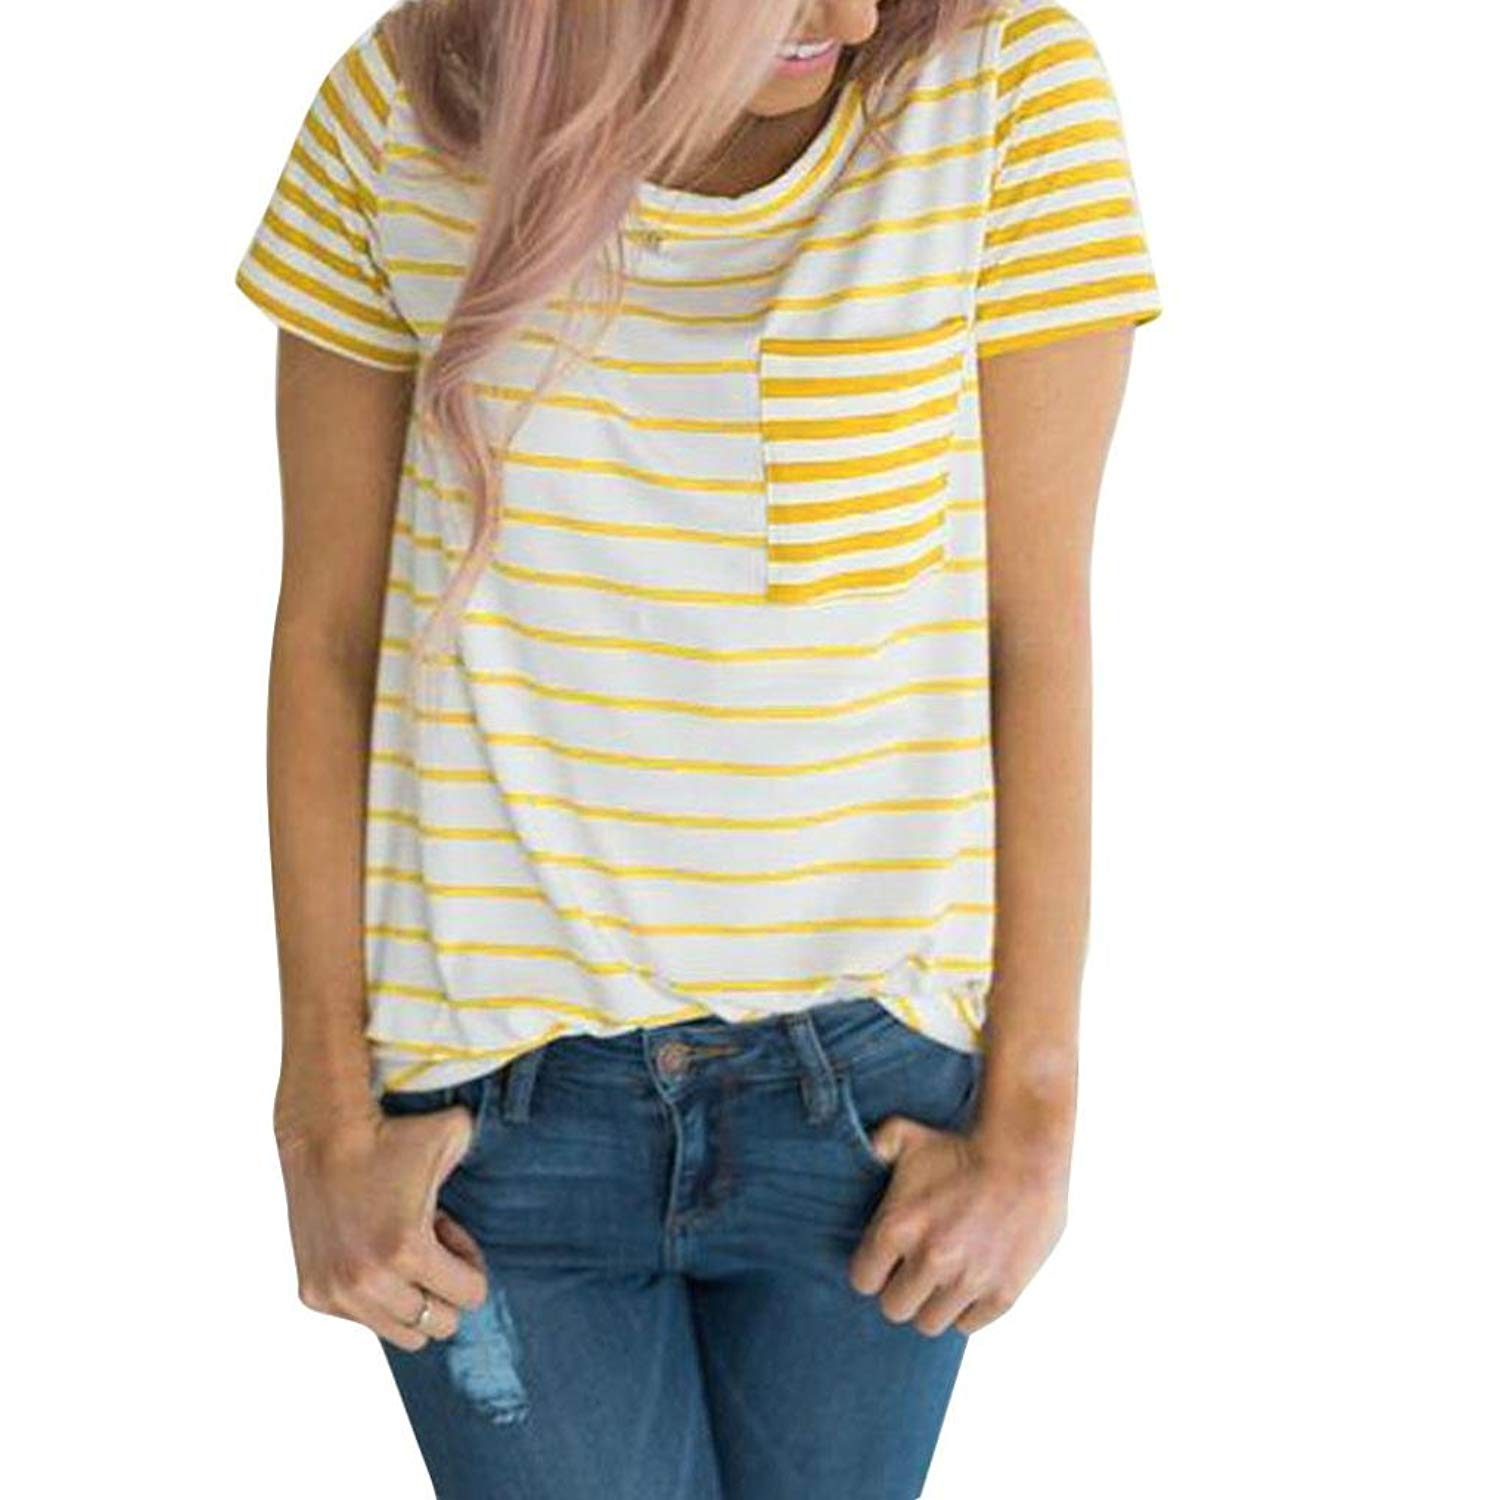 Zainafacai Womens Short Sleeve Round Neck T Shirts Color Block Striped Casual Blouses Tops